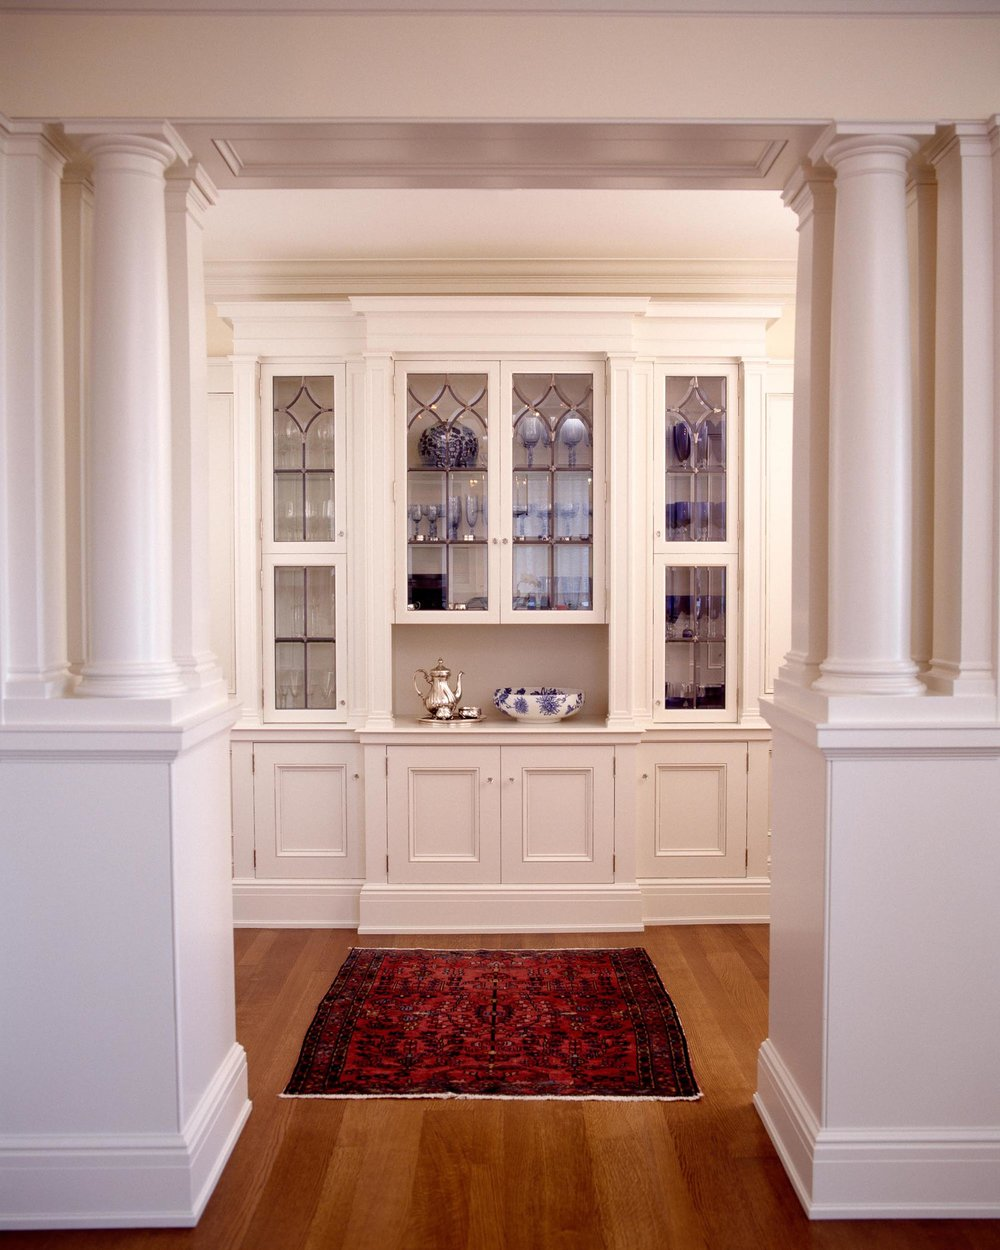 House interior design with white cabinet and hardwood floor